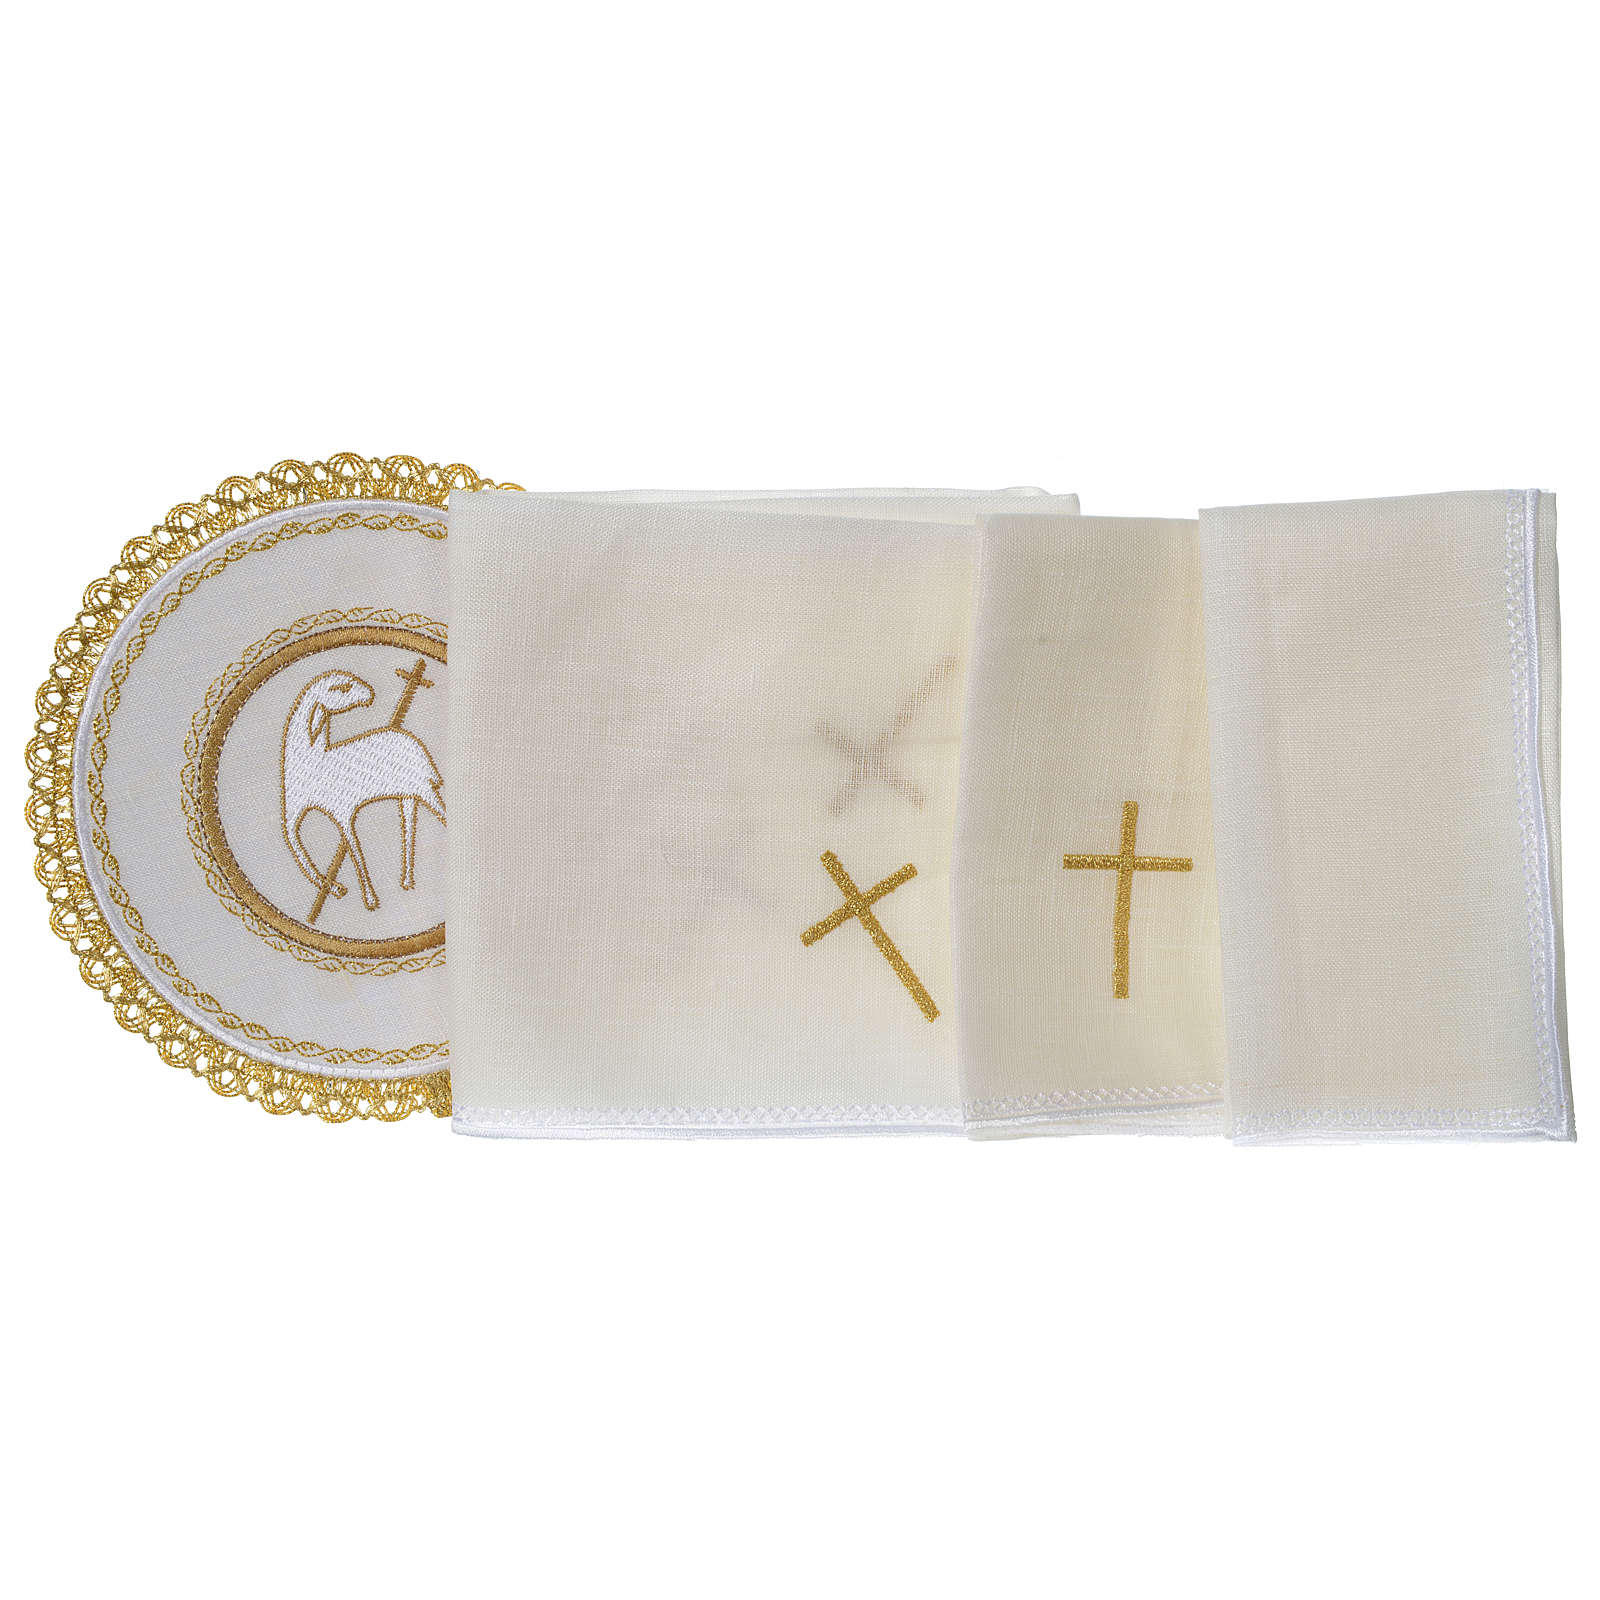 Lamb of God mass linens 100% linen with round pall 4